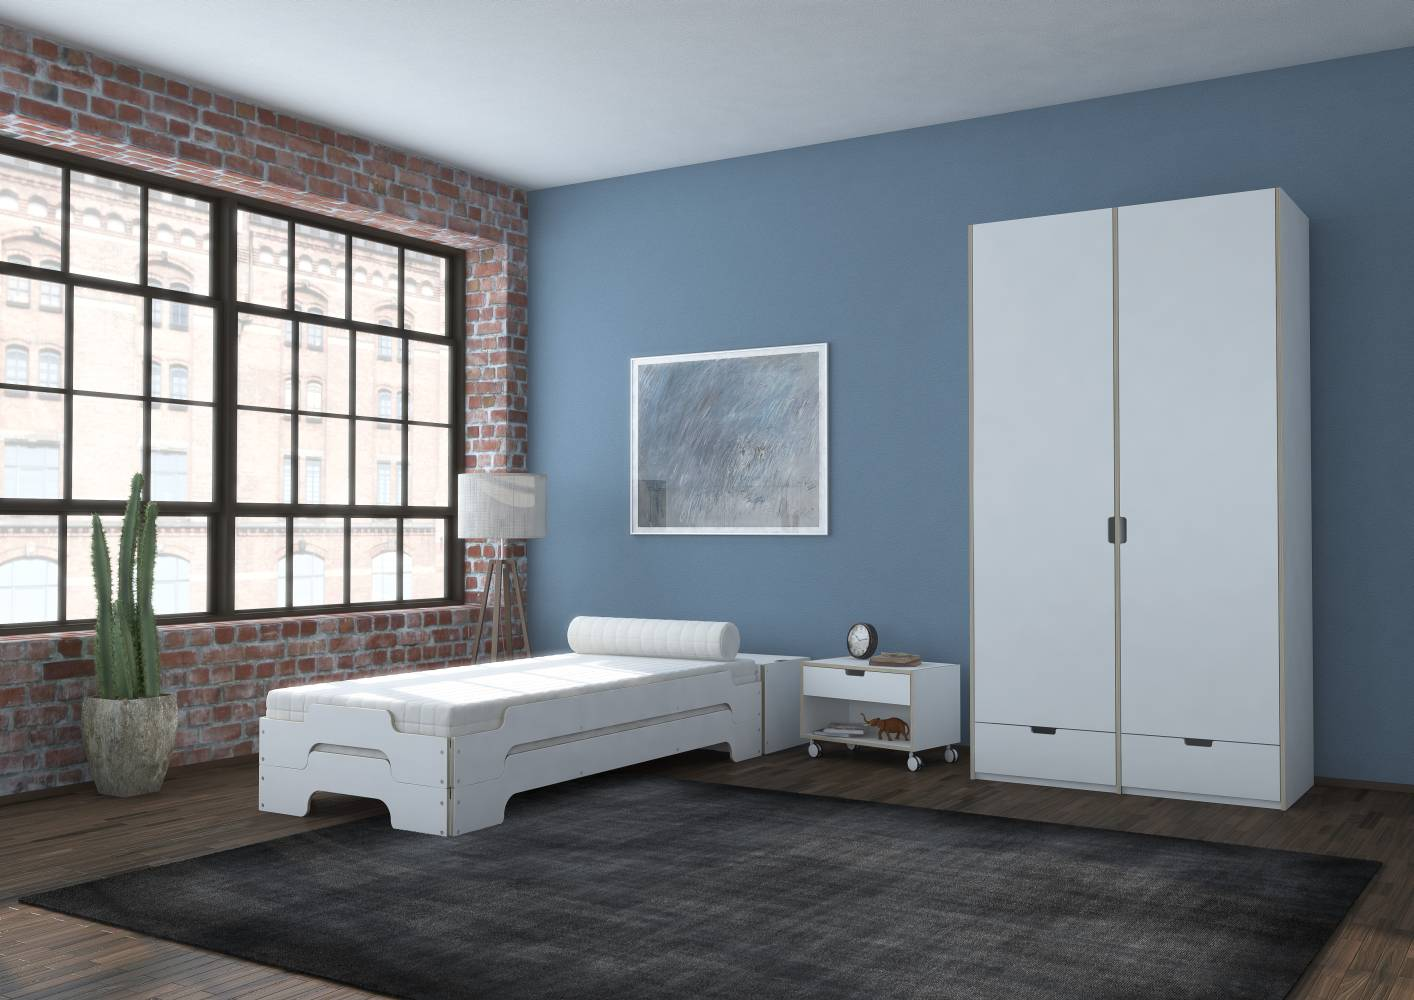 modular kleiderschrank von rolf heide bei. Black Bedroom Furniture Sets. Home Design Ideas